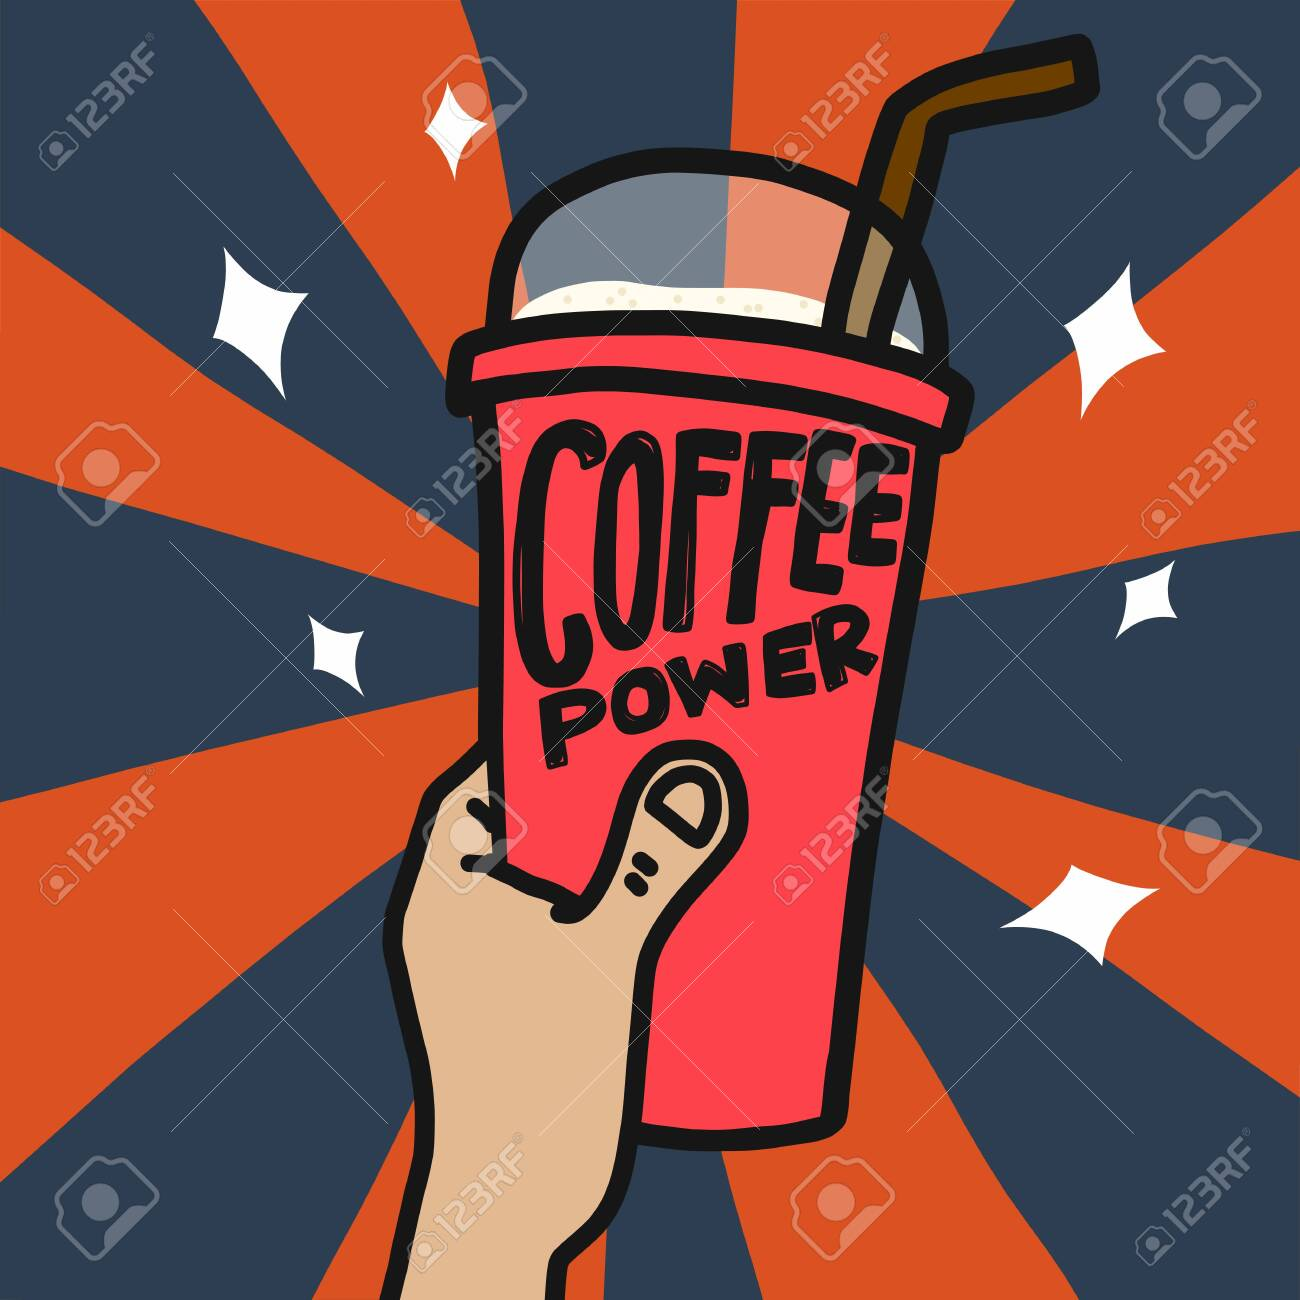 Coffee power ice cup in hand vector illustration - 133542412